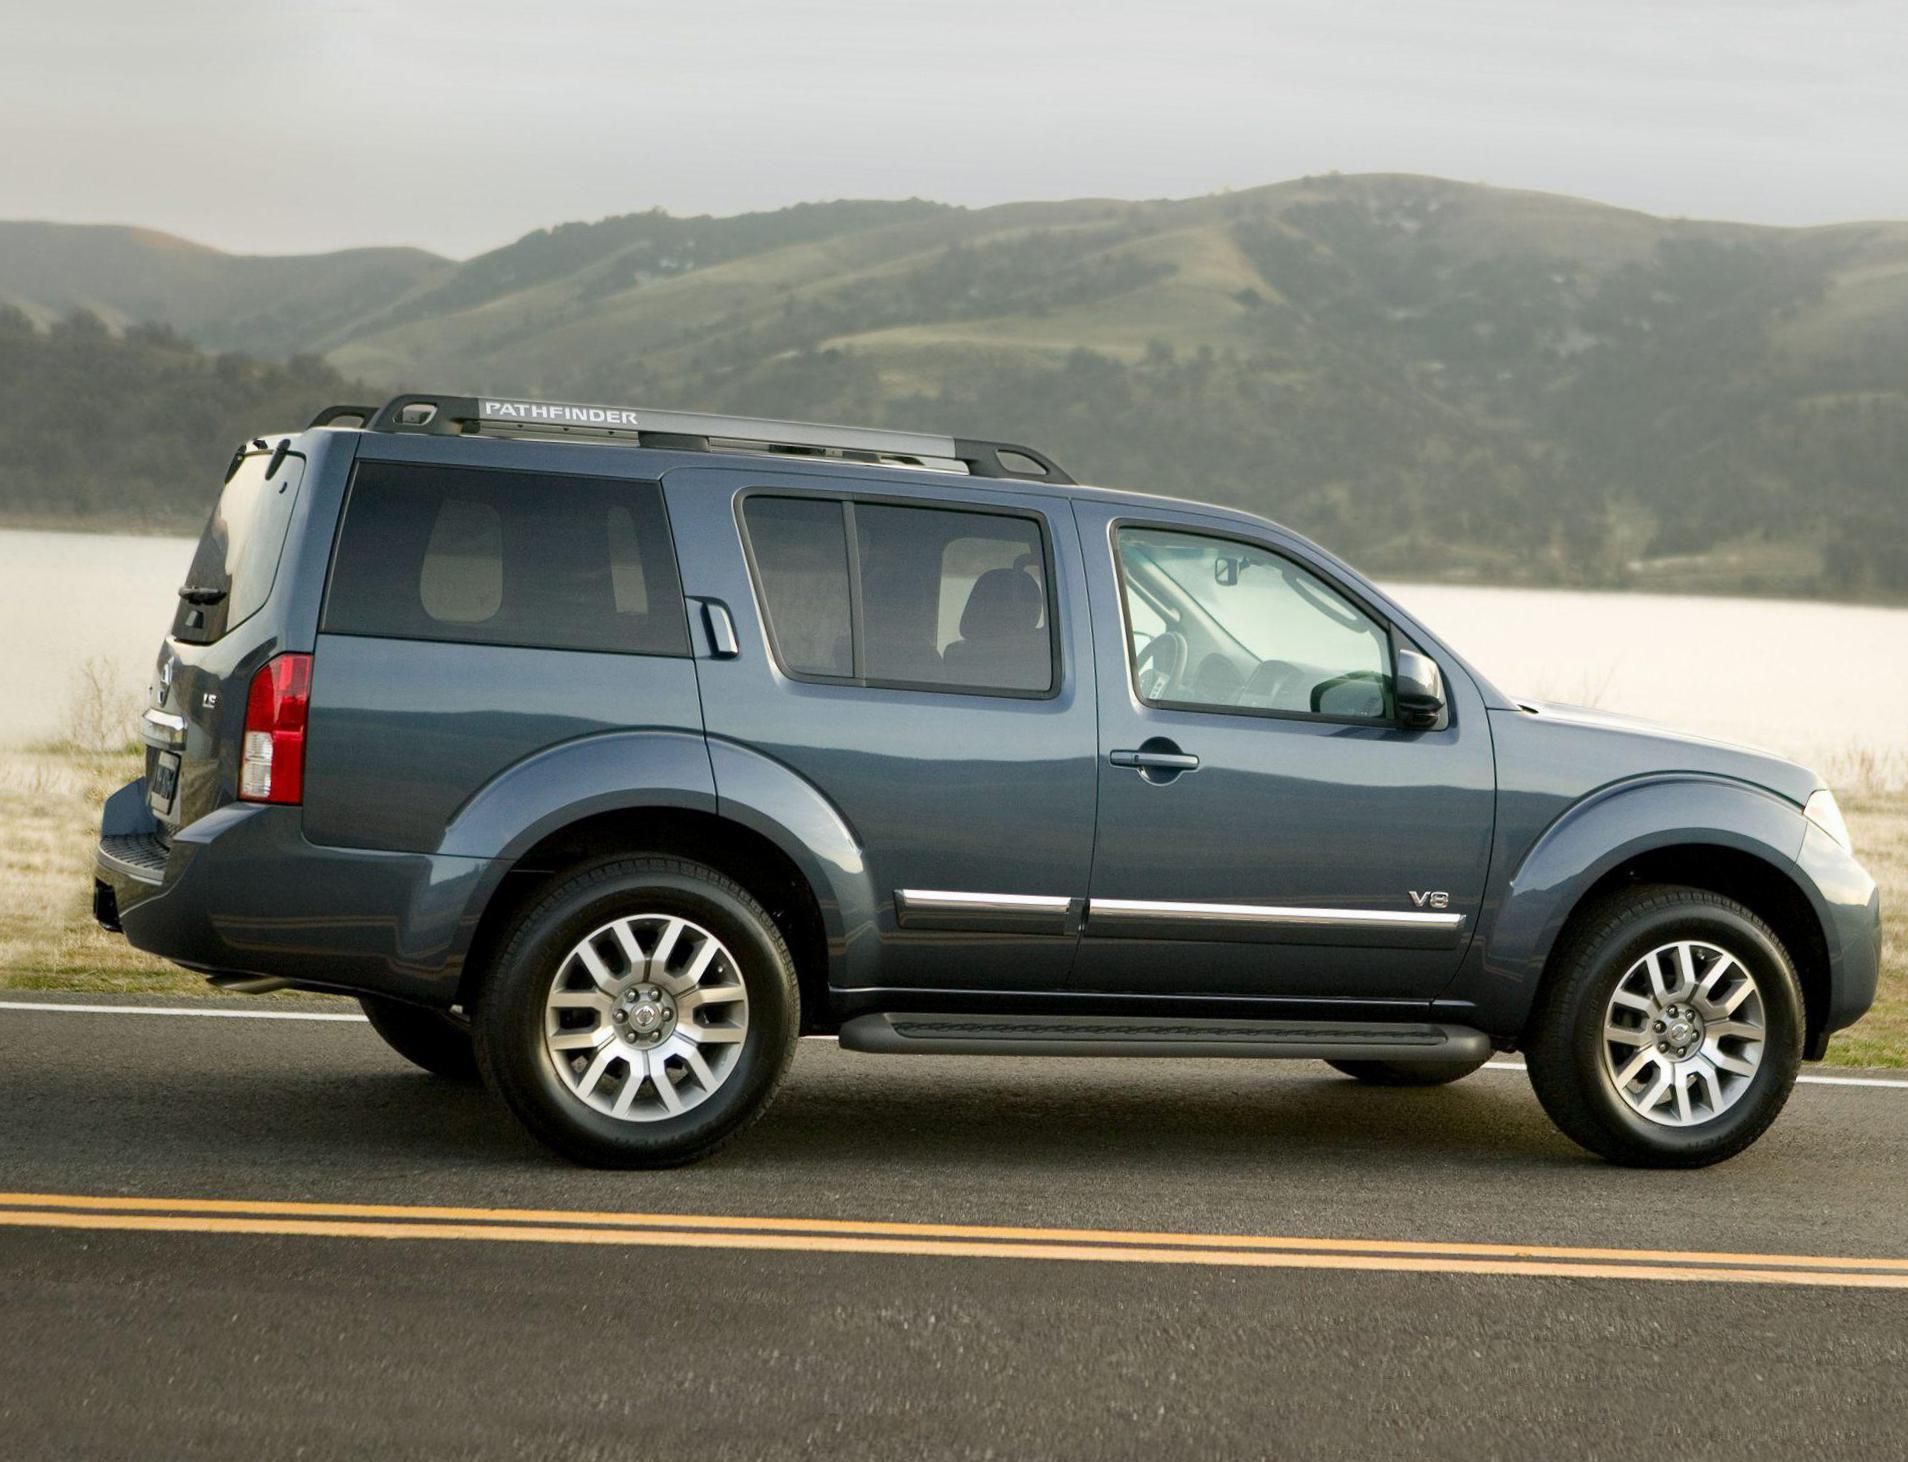 pathfinder nissan for reviews sale review